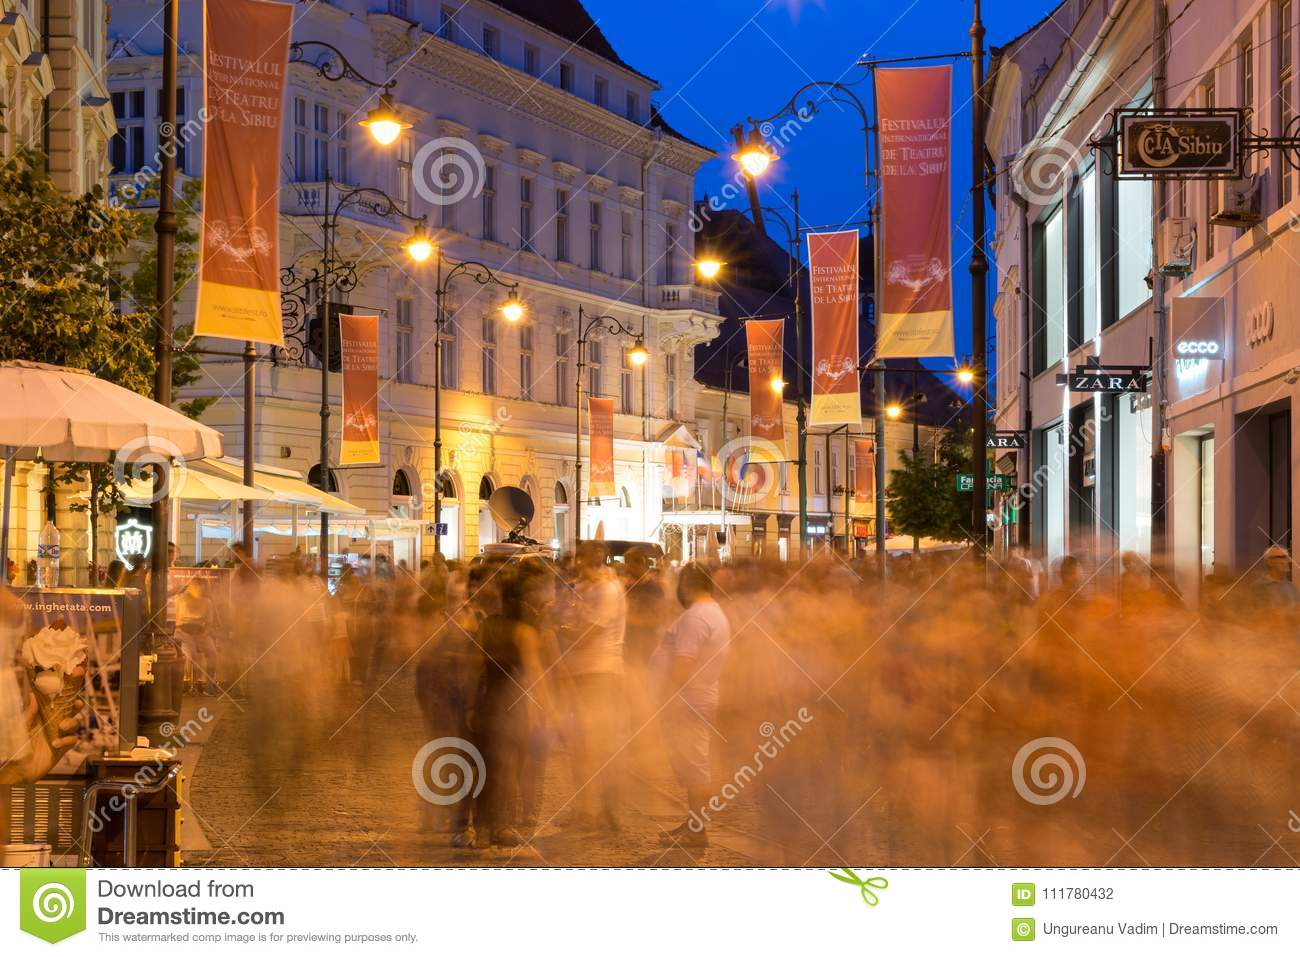 SIBIU, ROMANIA - 17 JUNE 2016: People passing by on a pedestrian walkway during Sibiu International Theatre Festival, Sibiu, Roman